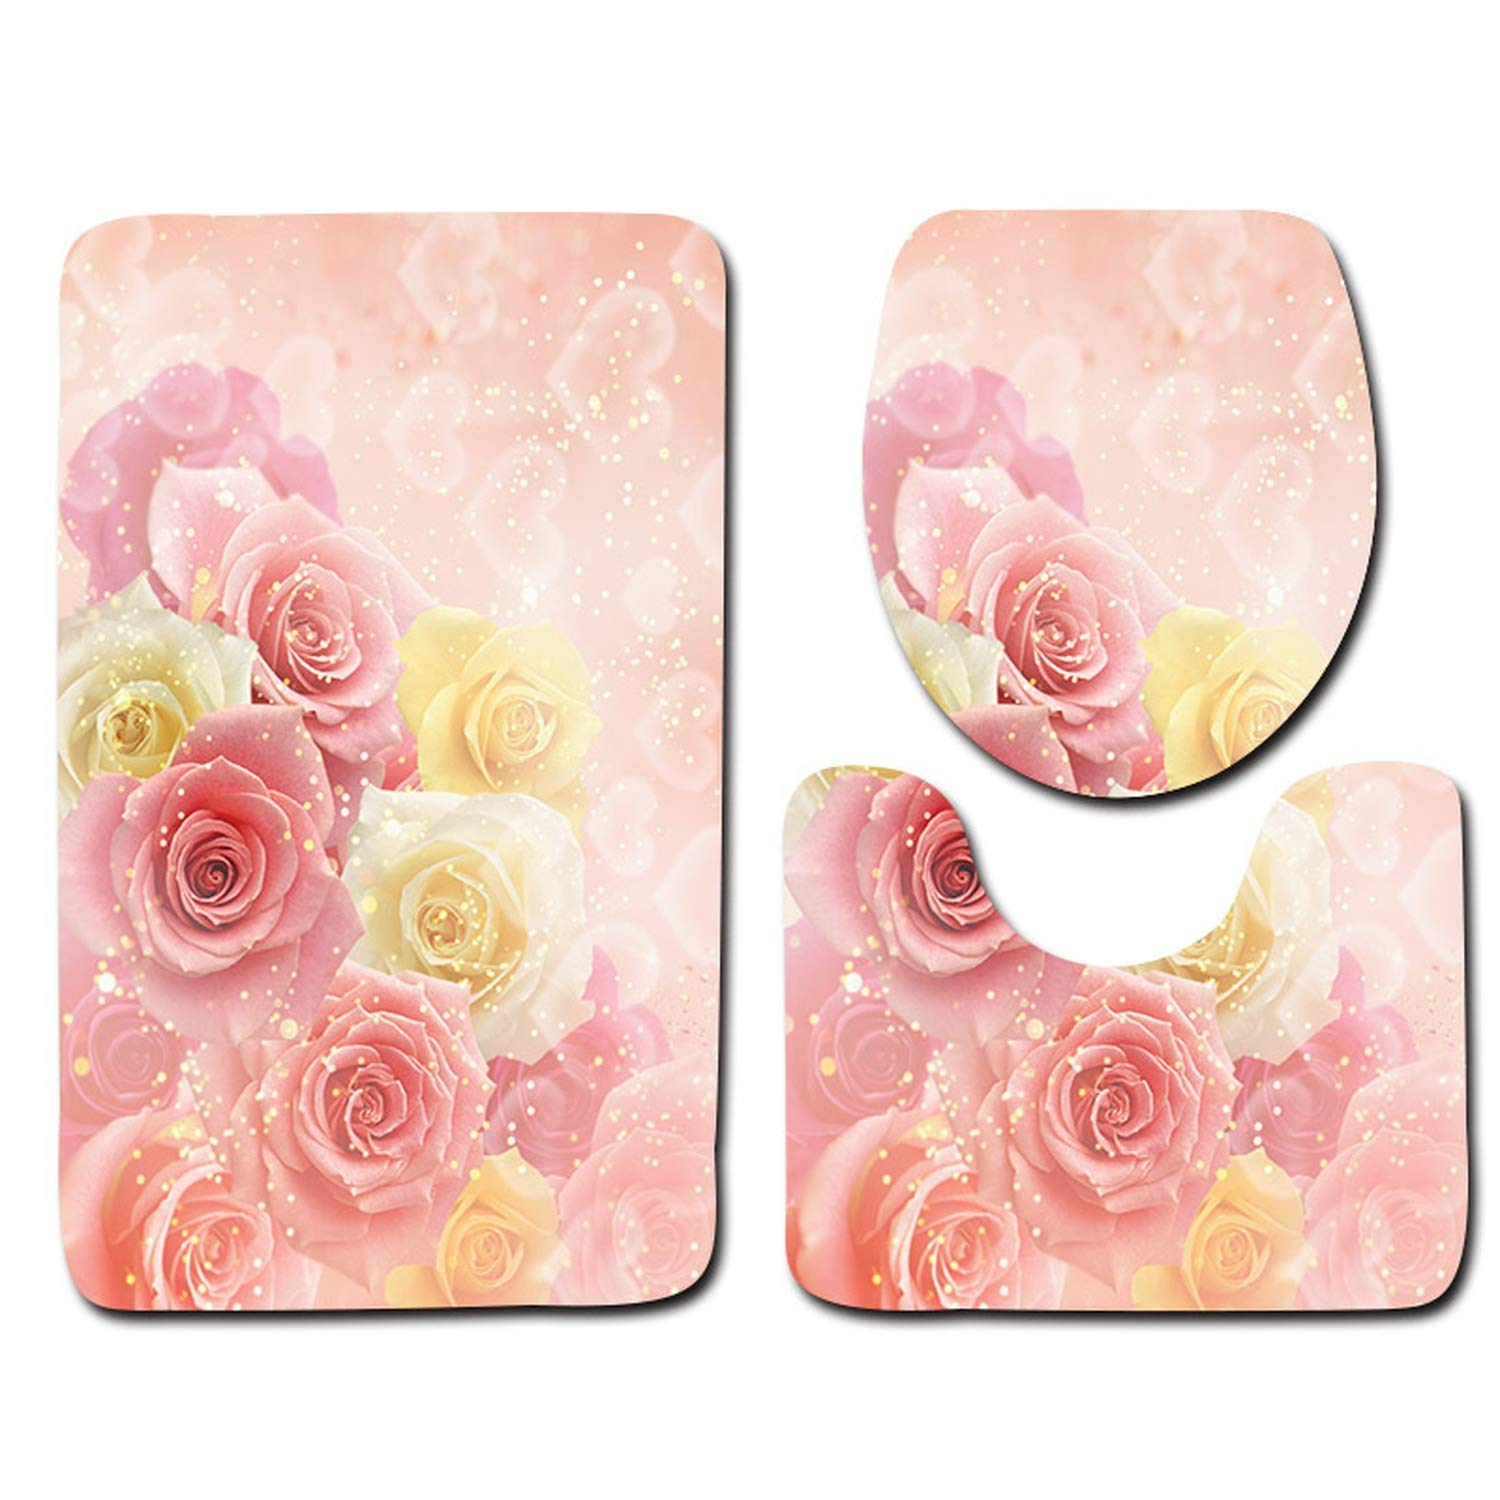 Acereima 3Pcs Rose Printed Bath Mats Toilet Set Rugs Non-Slip Bathroom Carpet Set Toilet Mats,7,3 Pieces